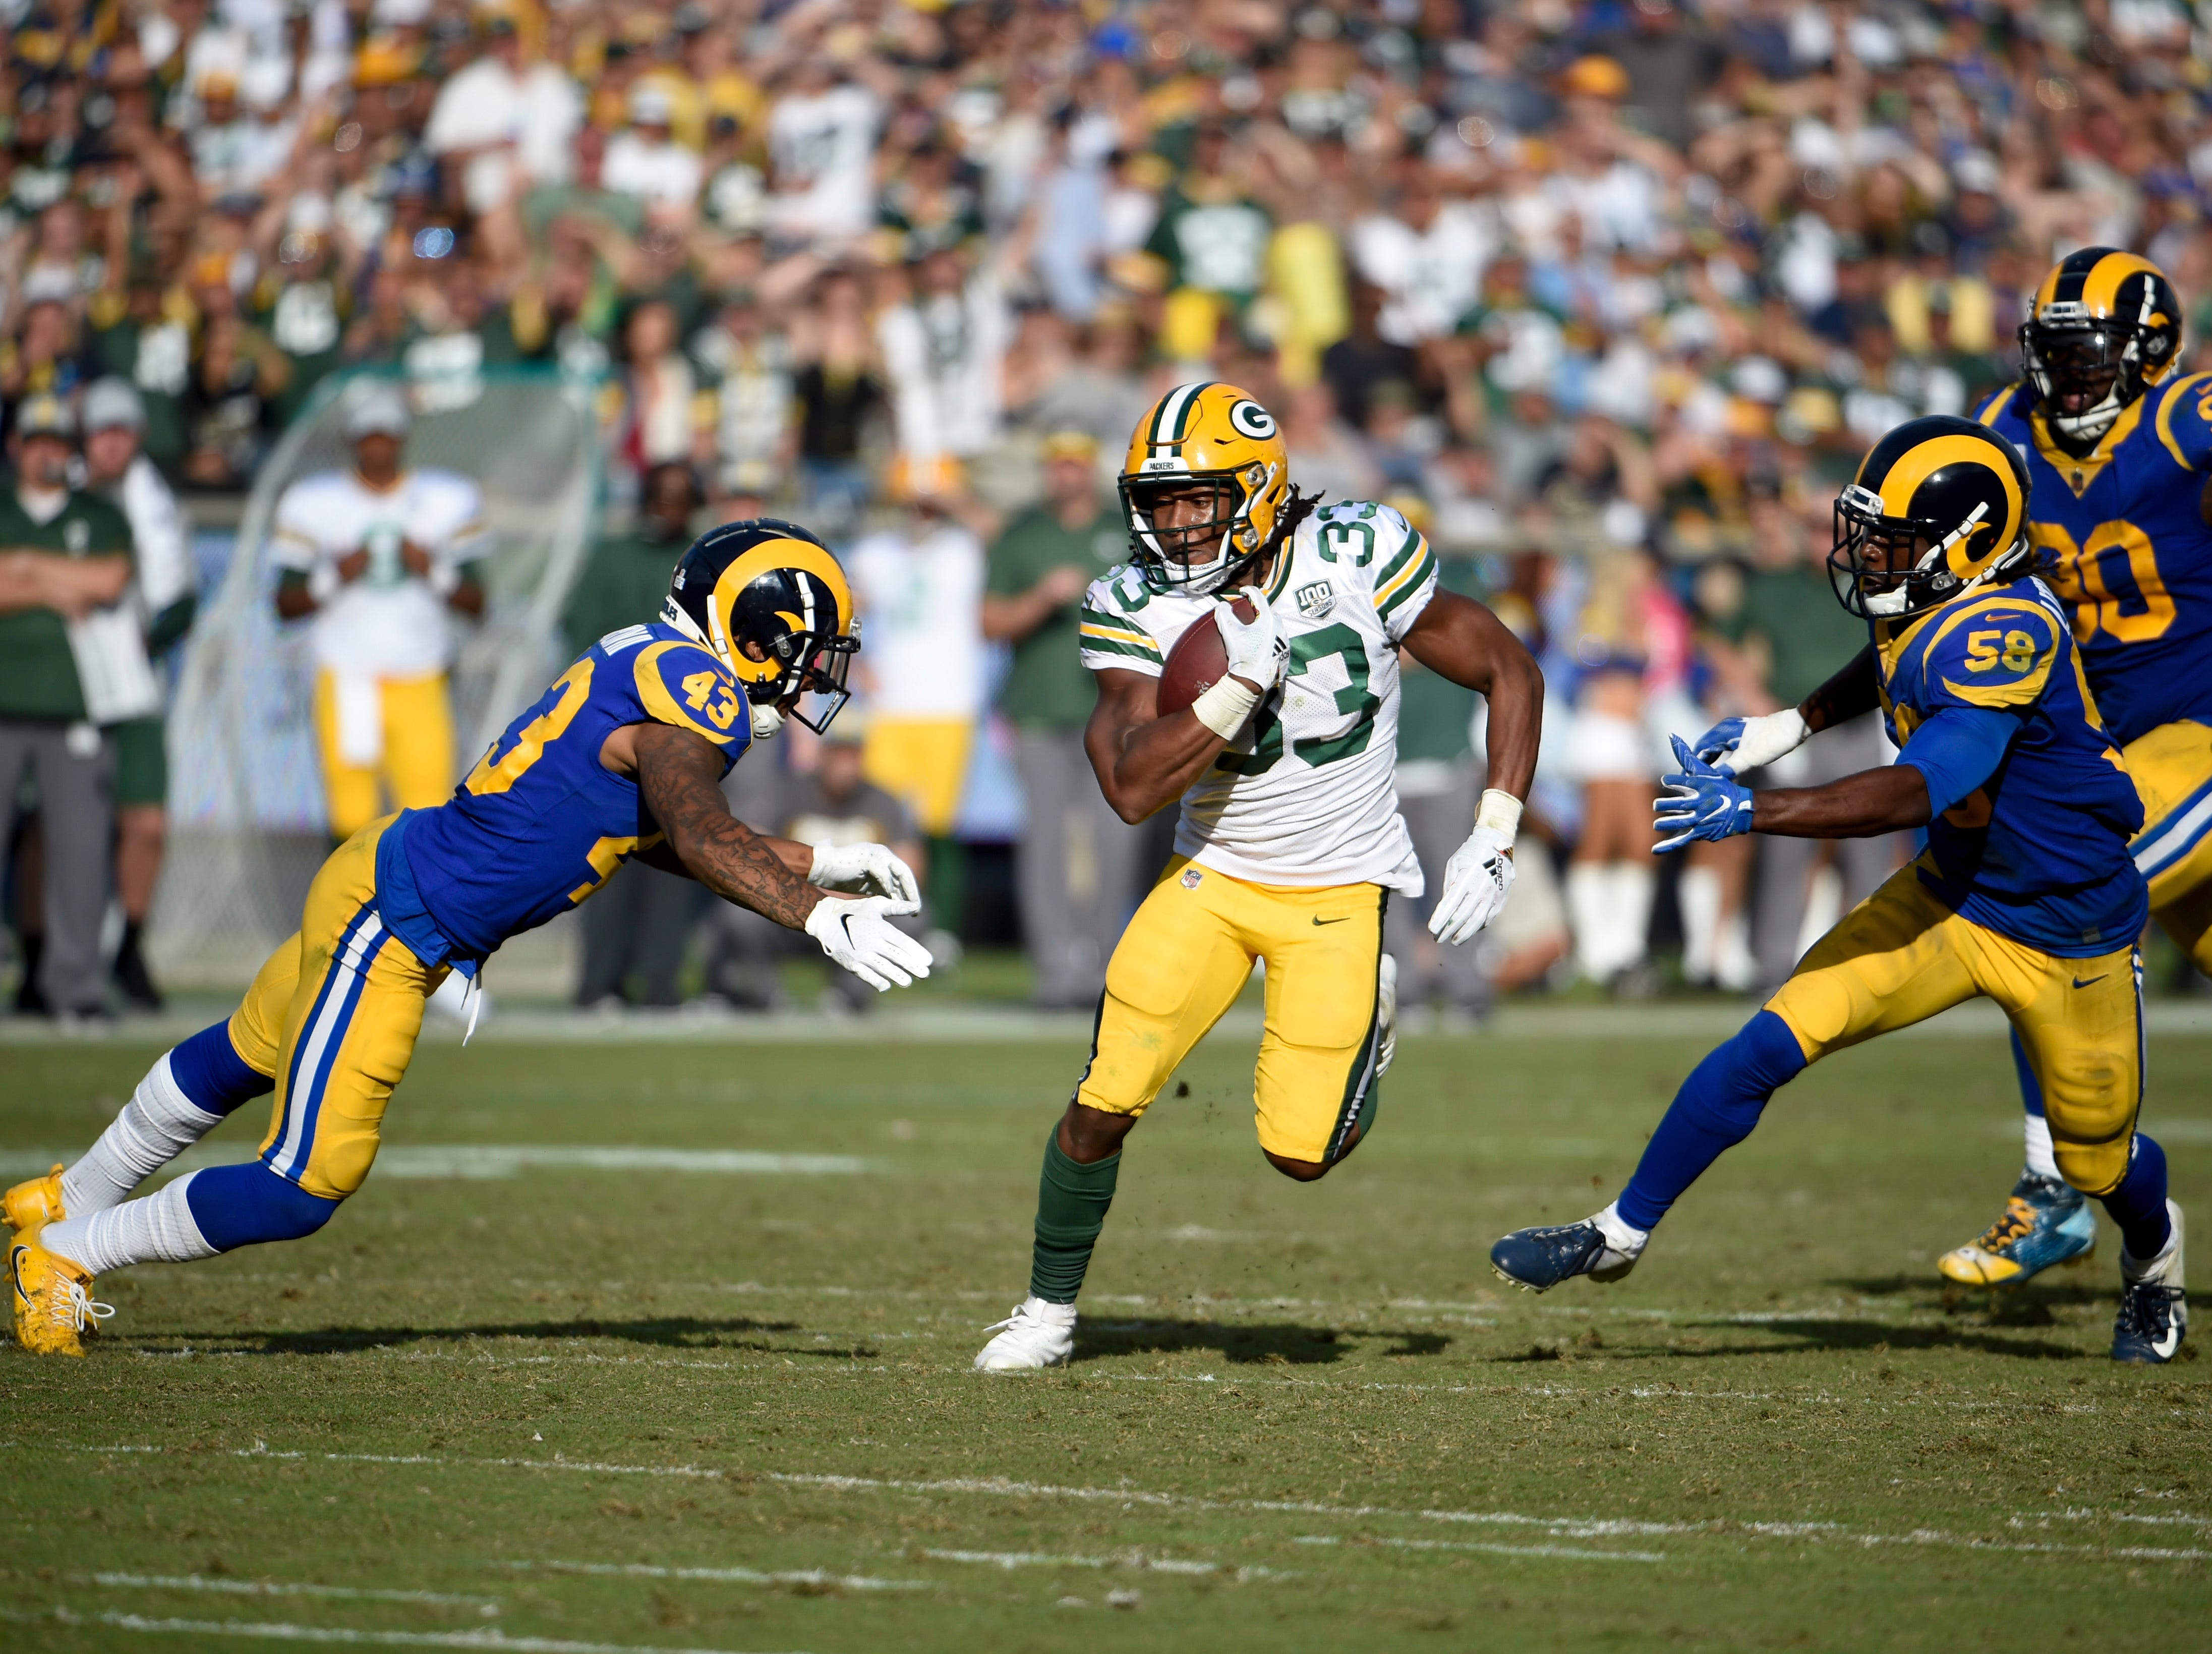 Green Bay Packers running back Aaron Jones (33) gets past Los Angeles Rams strong safety John Johnson on his way to scoring a touchdown during the second half of an NFL football game, Sunday, Oct. 28, 2018, in Los Angeles. (AP Photo/Denis Poroy)